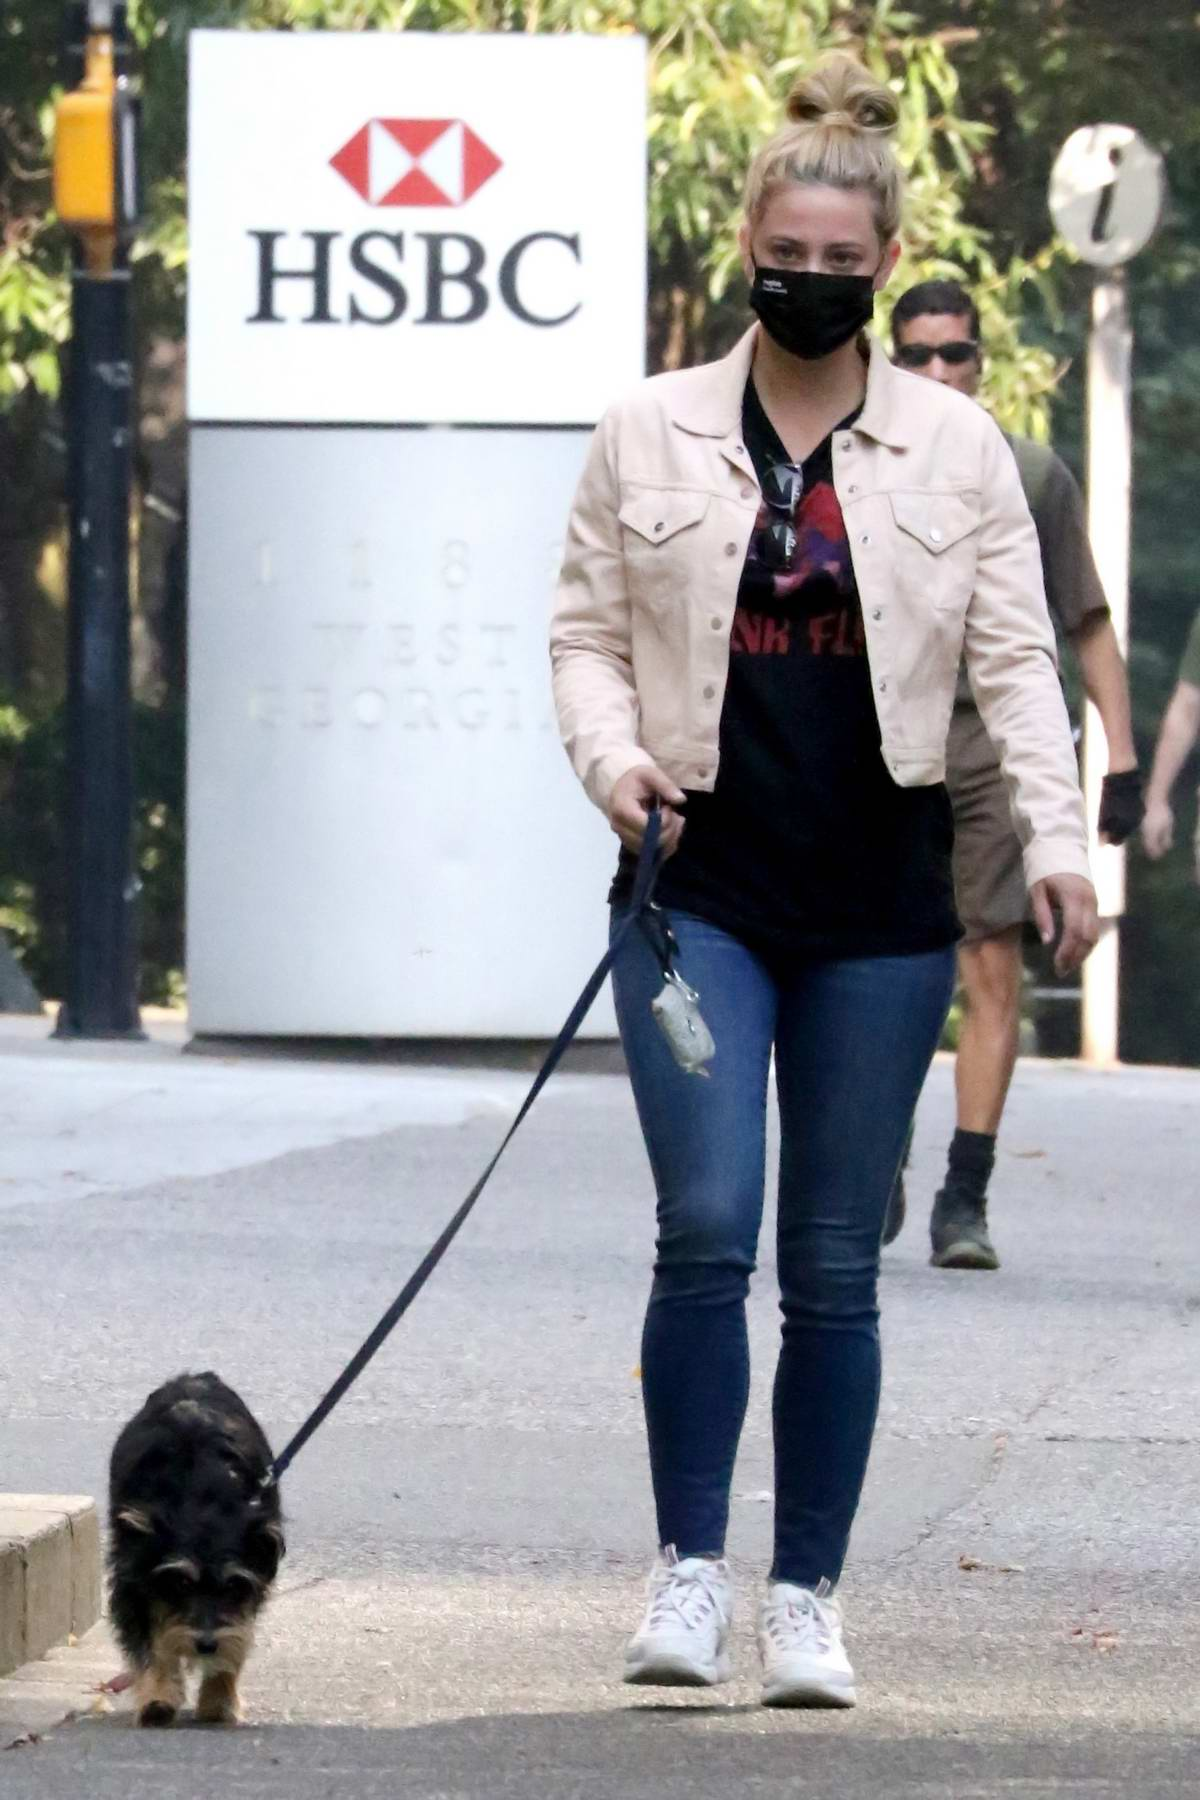 Lili Reinhart takes her dog Milo for a walk before heading to work on Riverdale in Vancouver, Canada